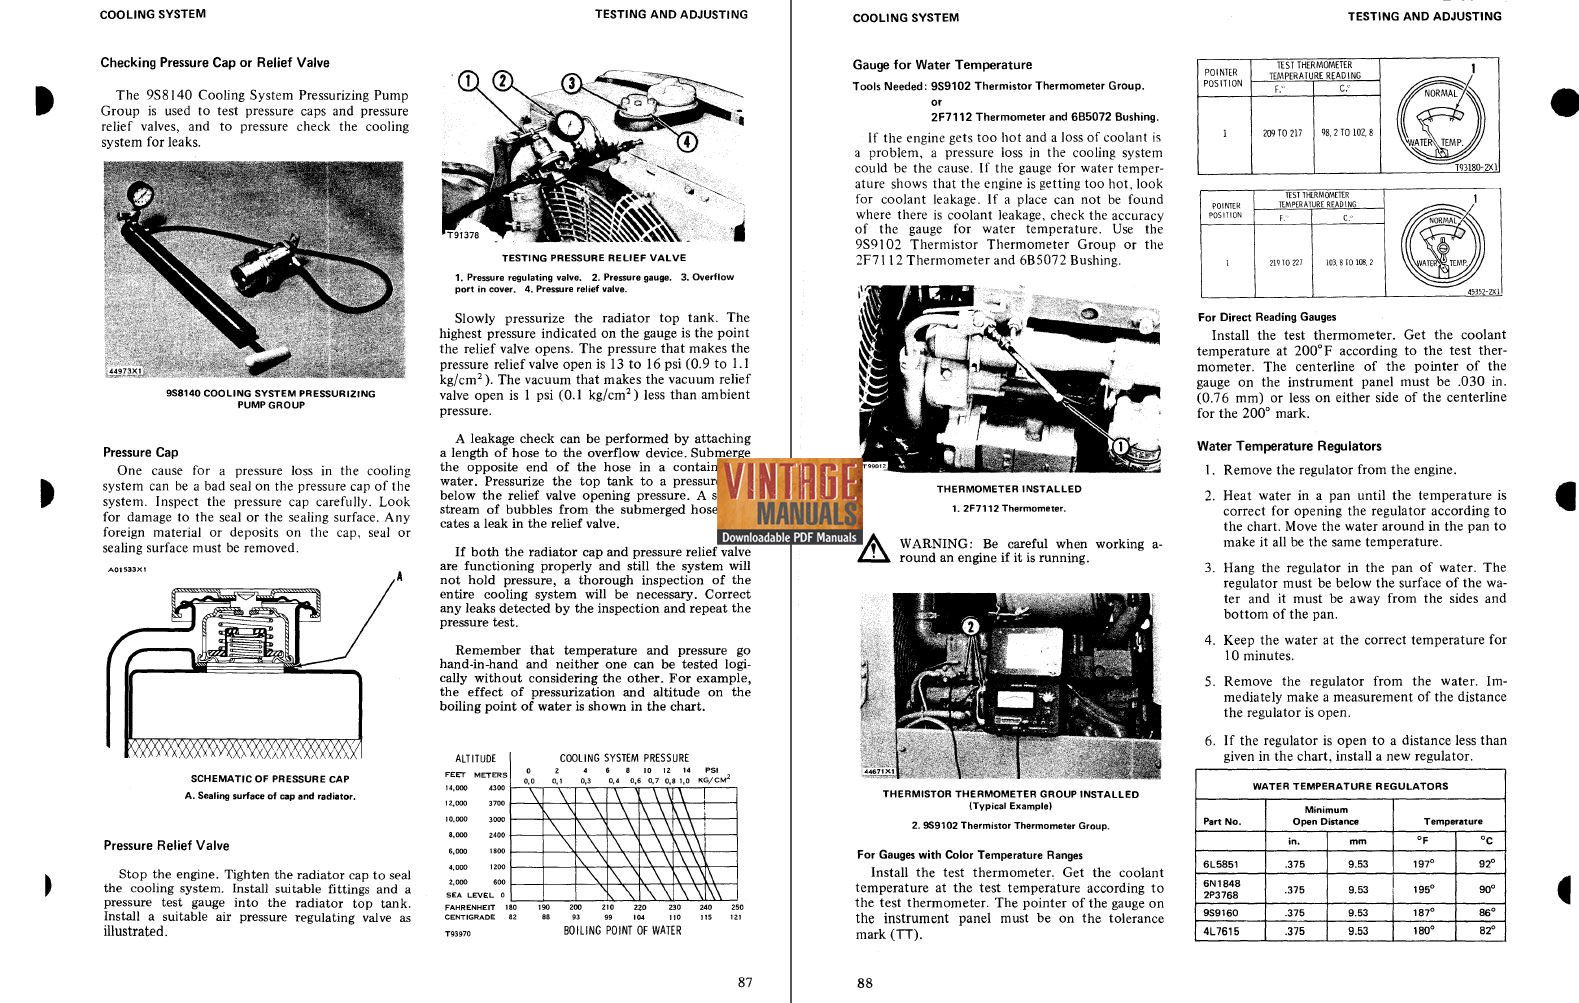 Cat 3512 Wiring Diagram Cat C15 Diagram Wiring Diagram